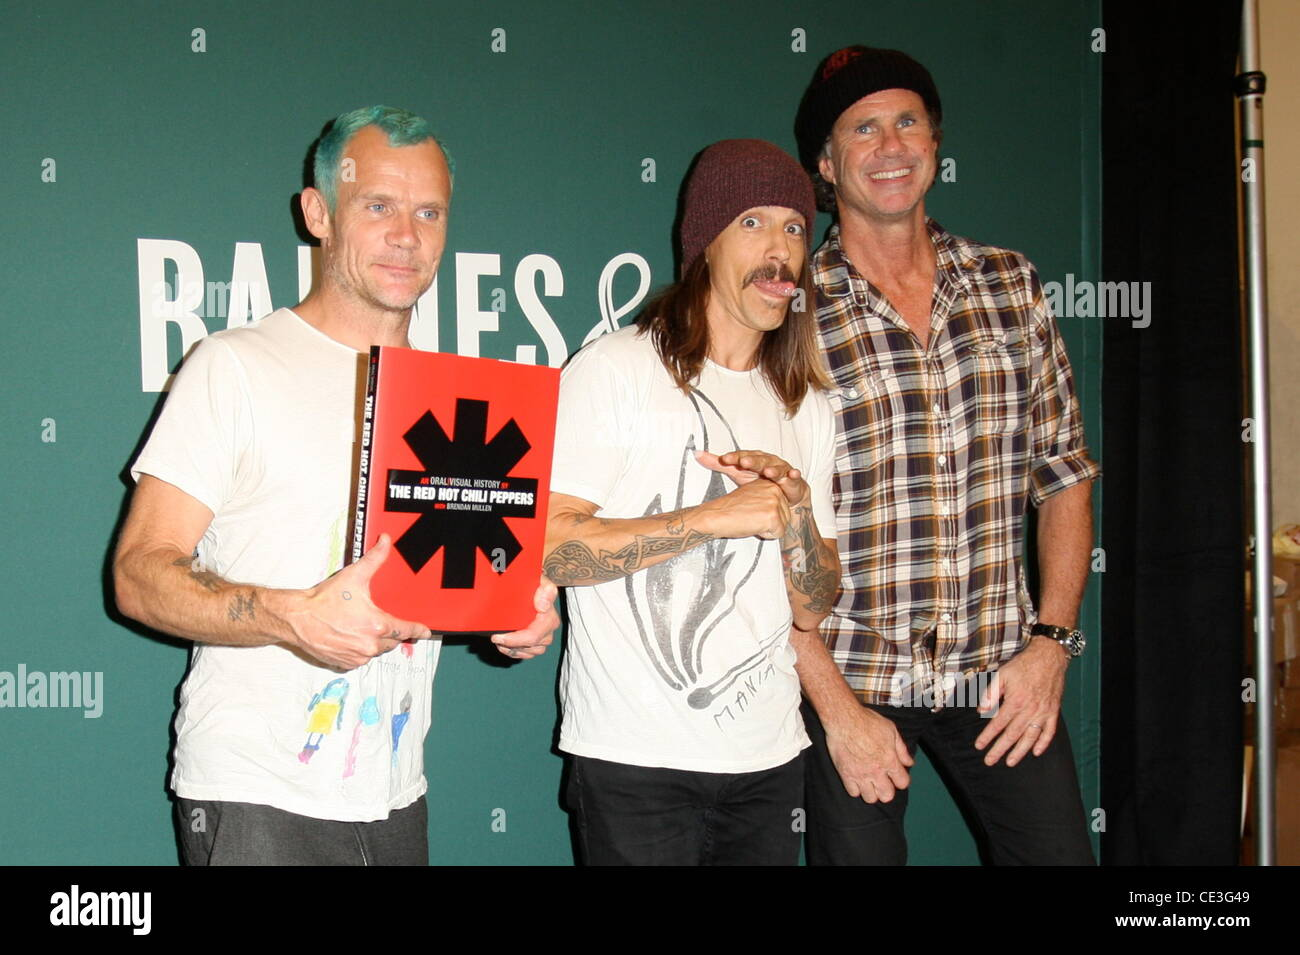 ... Anthony Kiedis and Chad Smith Red Hot Chili Peppers promote their new  book 'The Red Hot Chili Peppers: An Oral/Visual History' at The Grove in  Hollywood ...